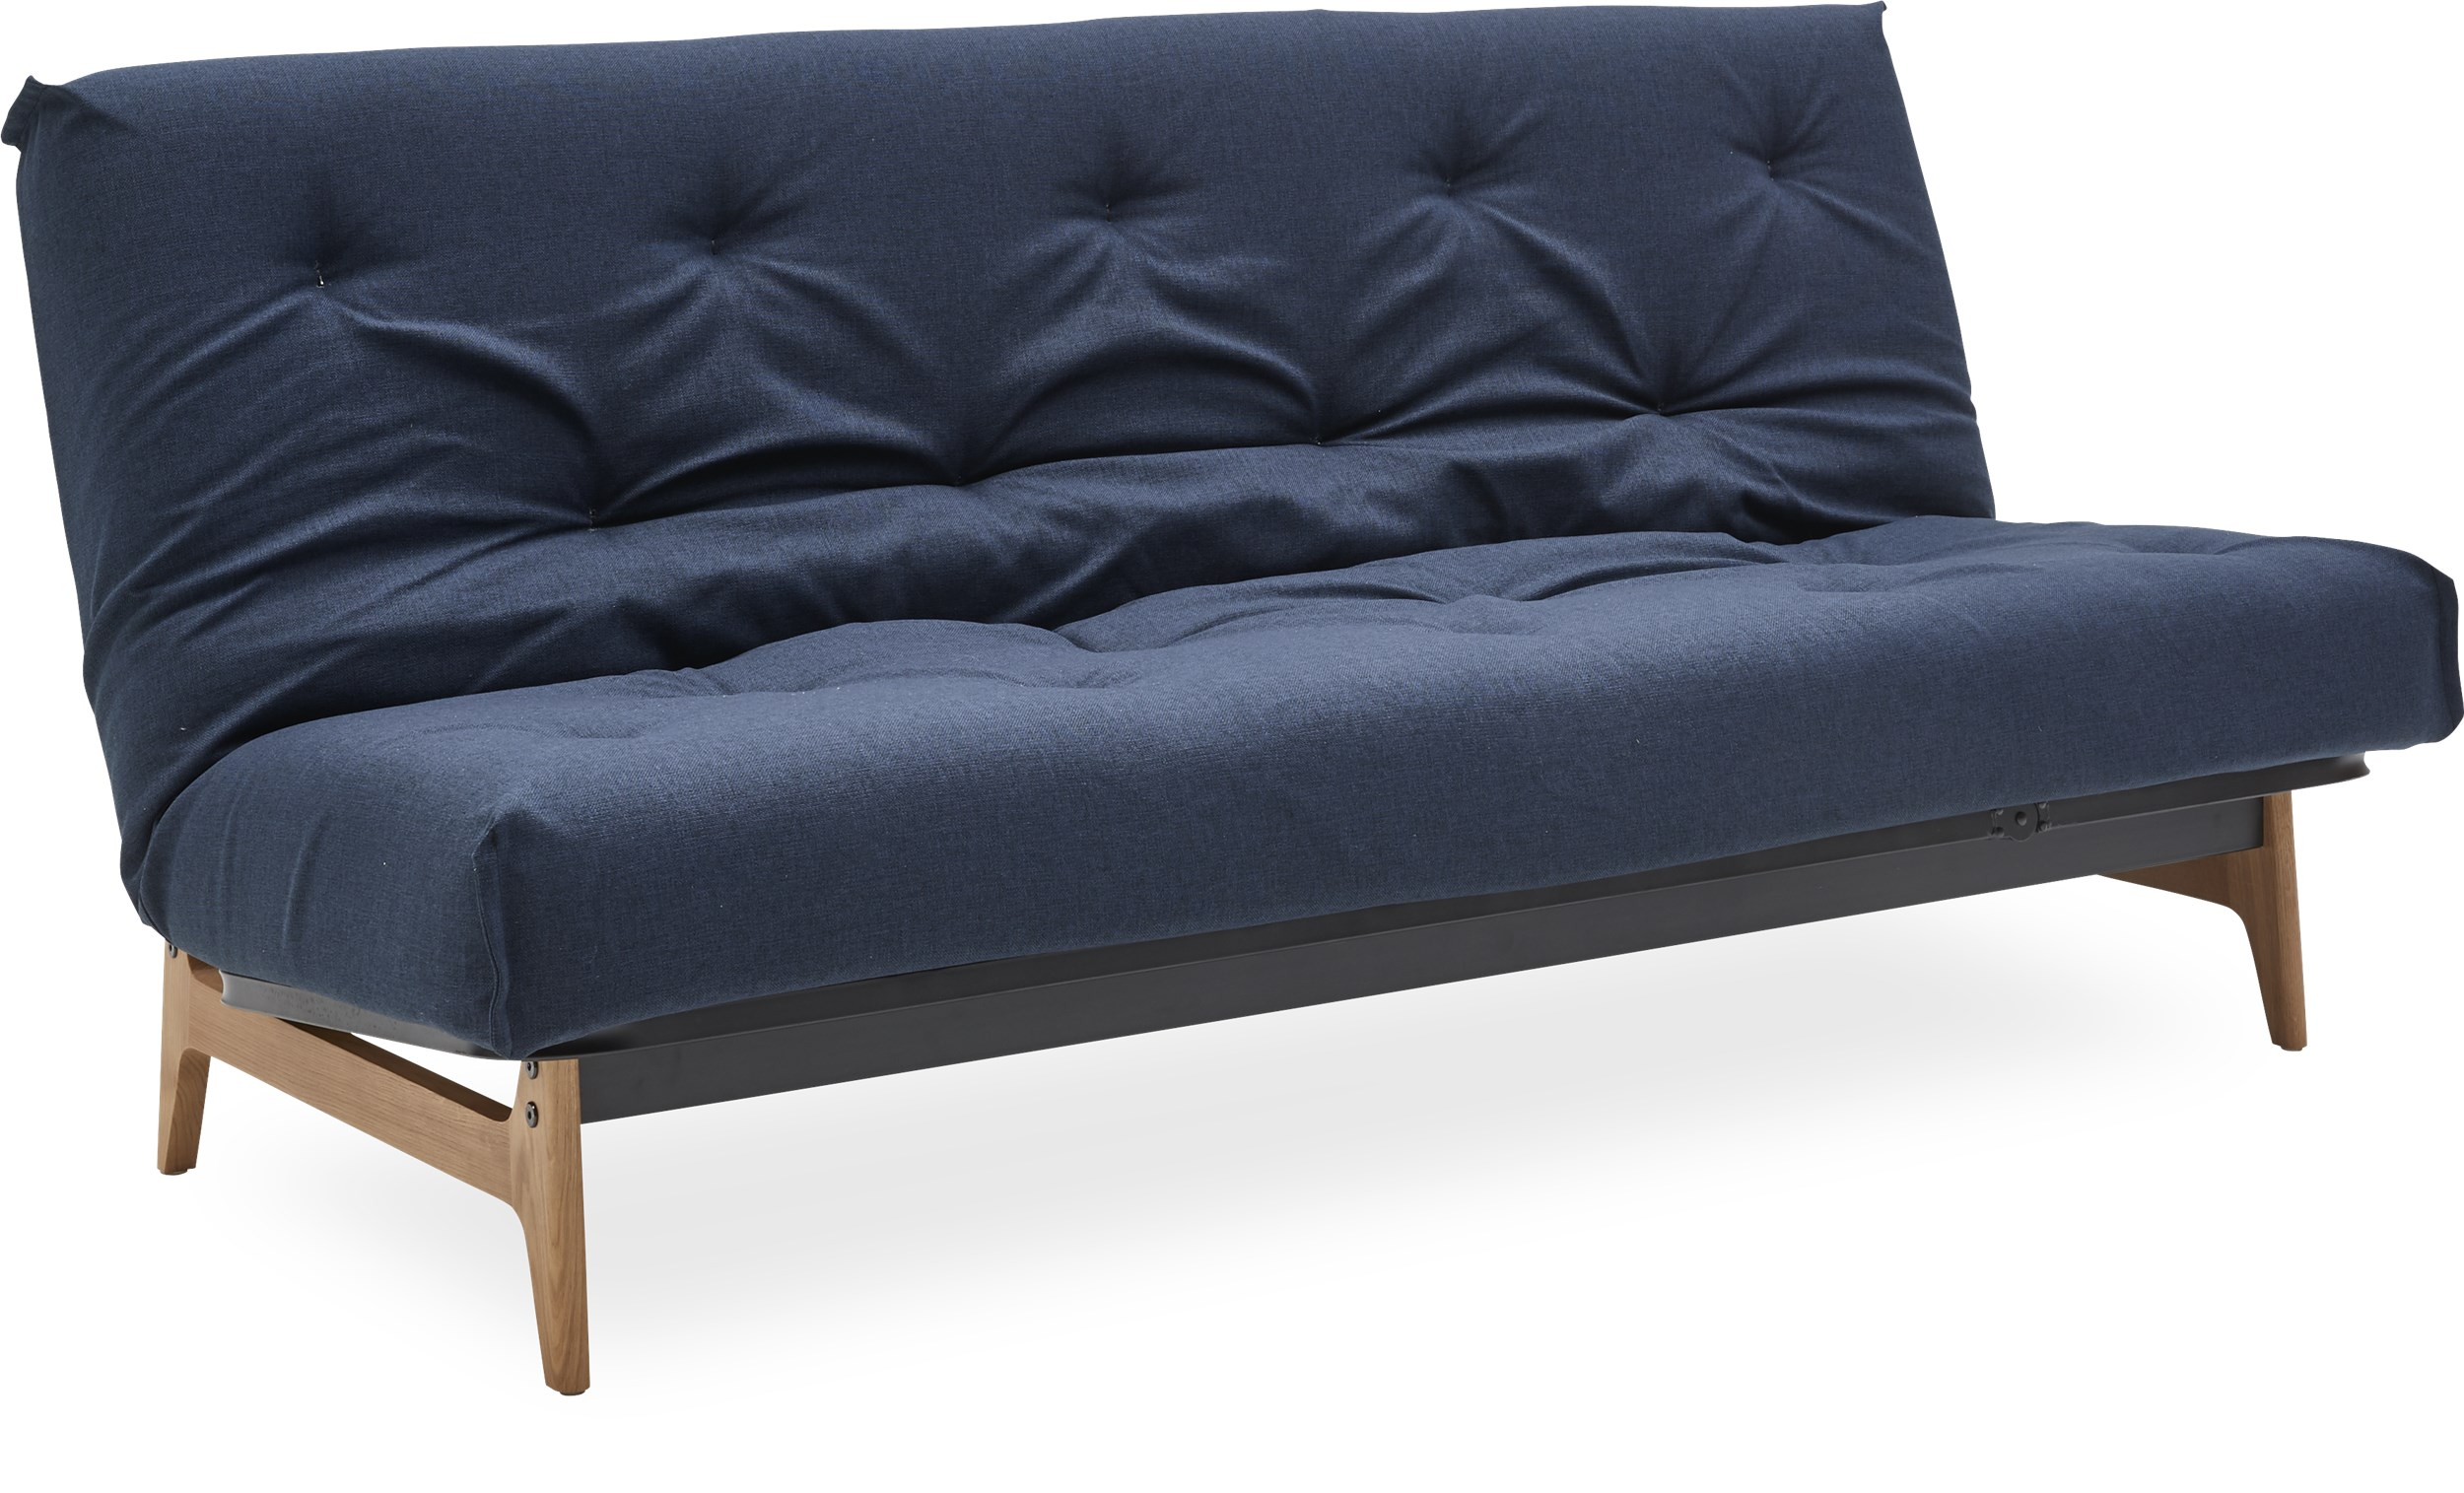 Innovation Living - Aslak Soft Spring Nordic Sovesofa